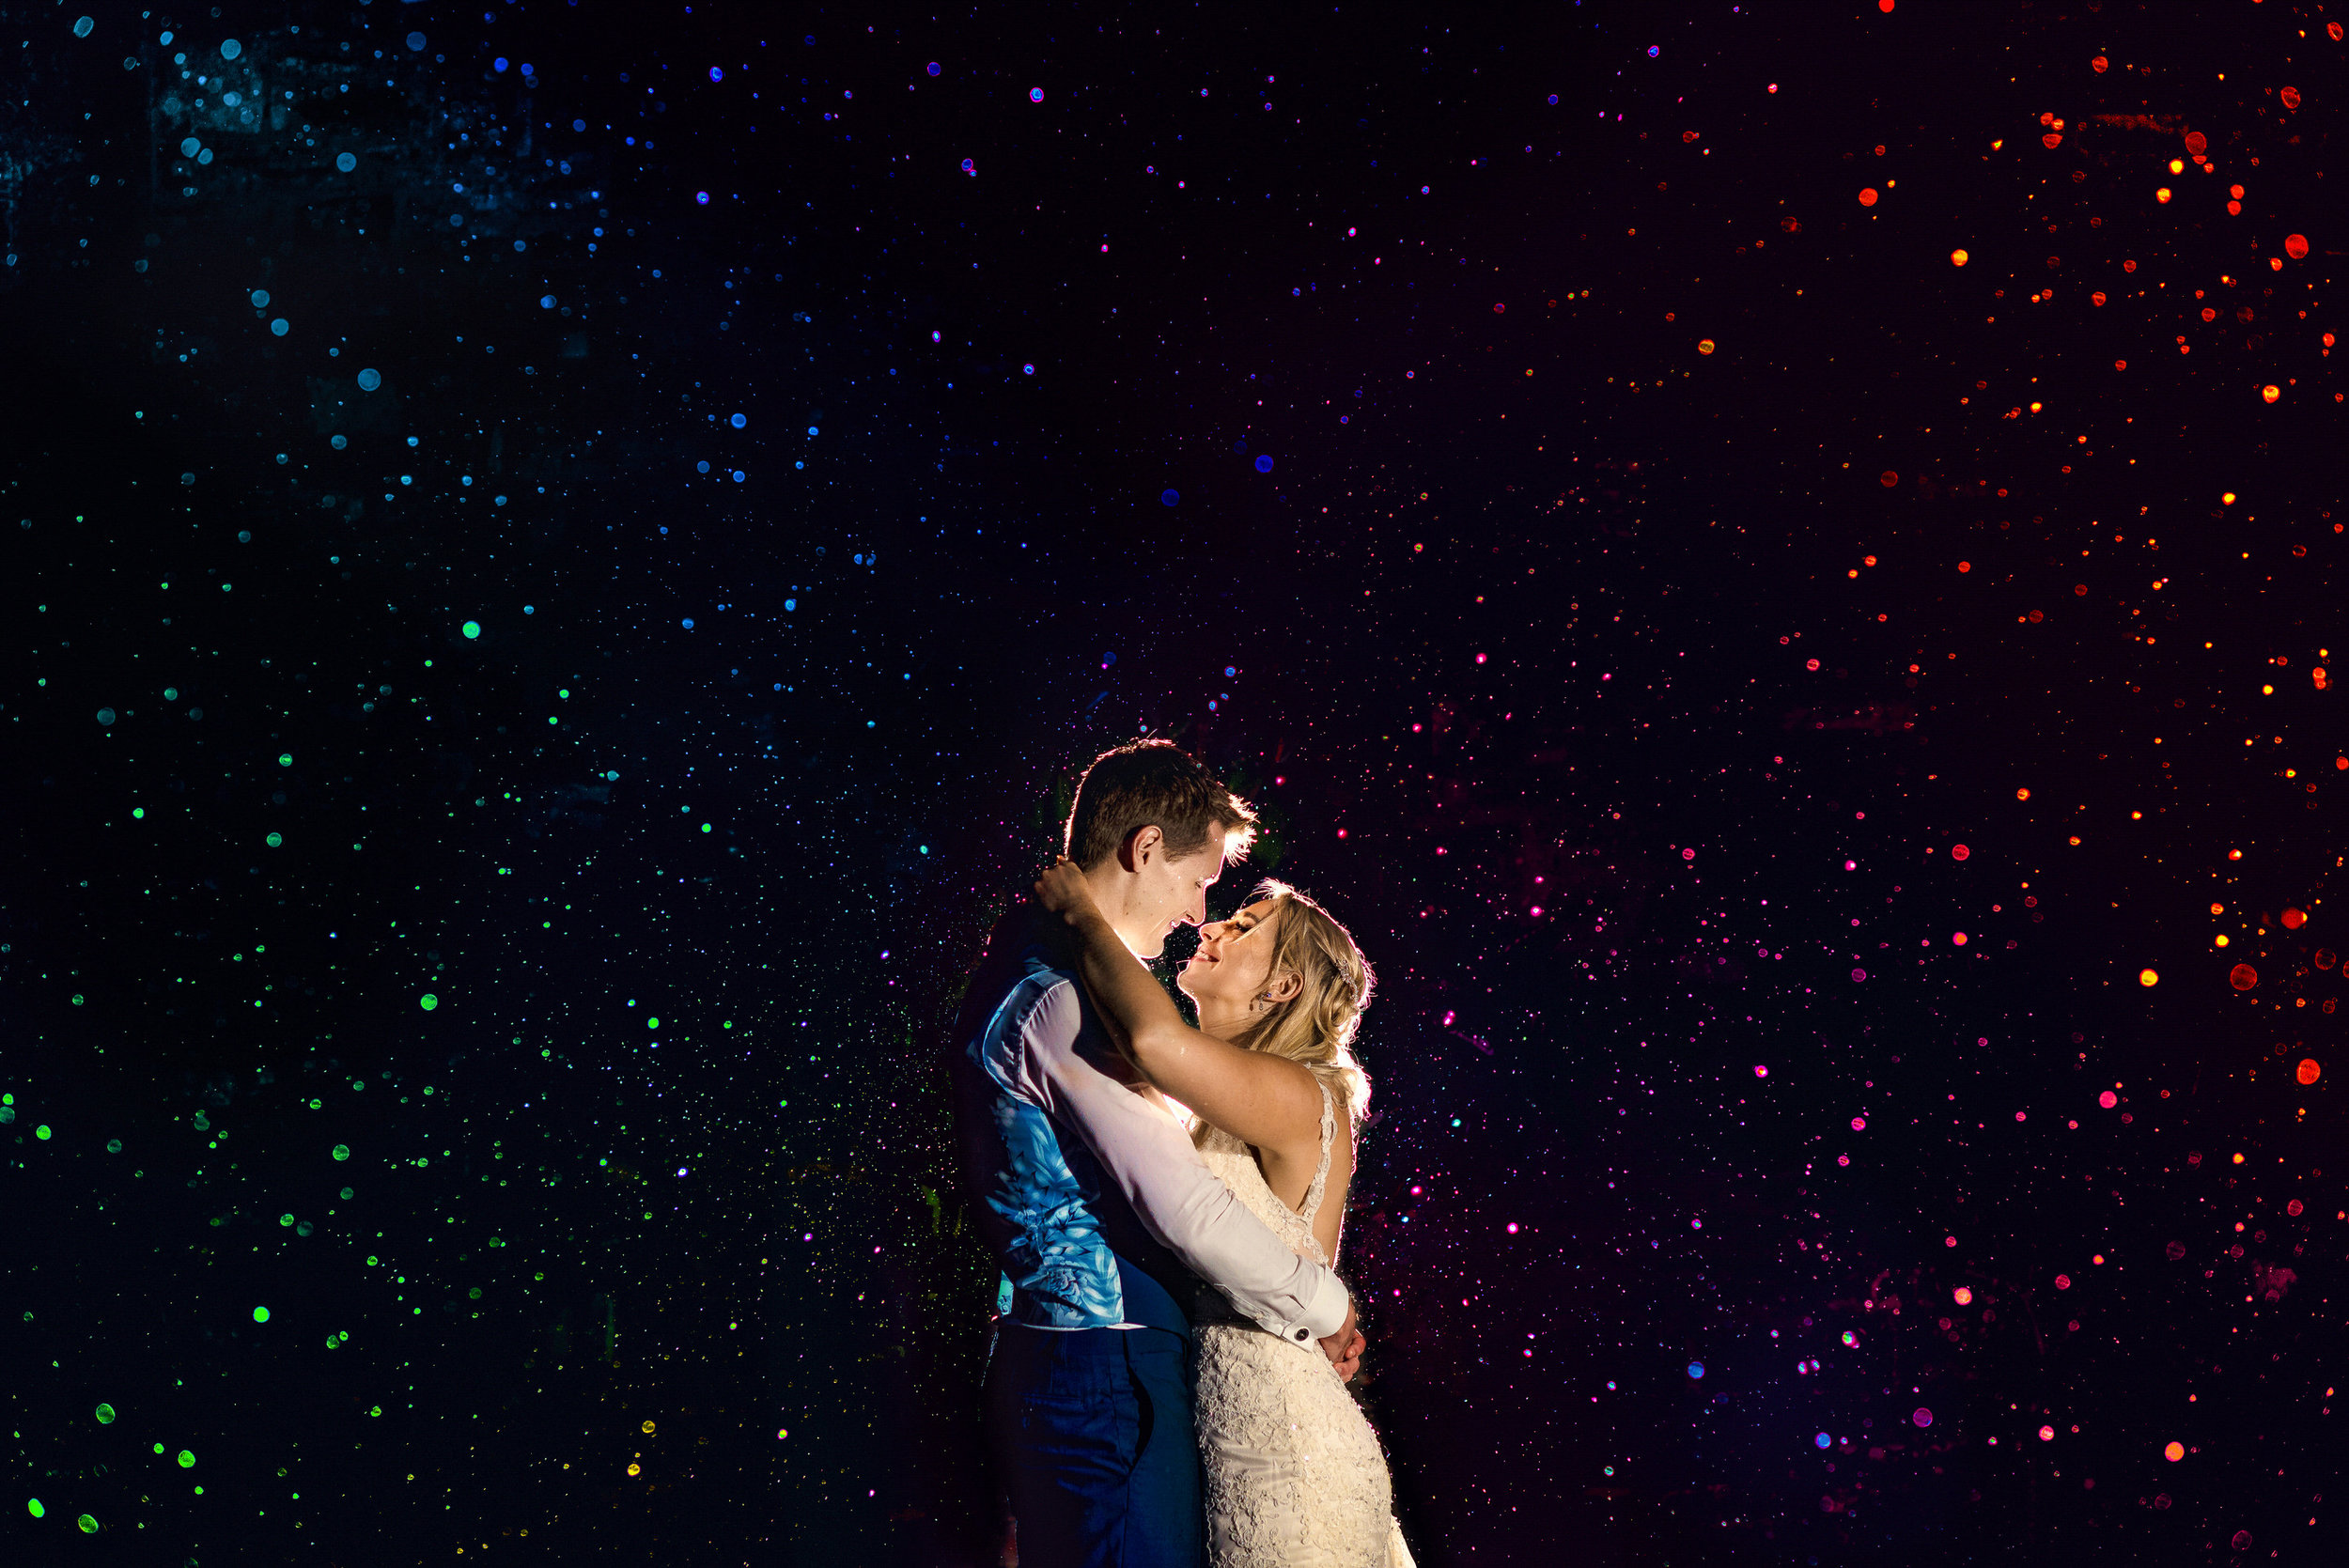 Colourful Wedding Photographer - Photography by Vicki 00006.jpg